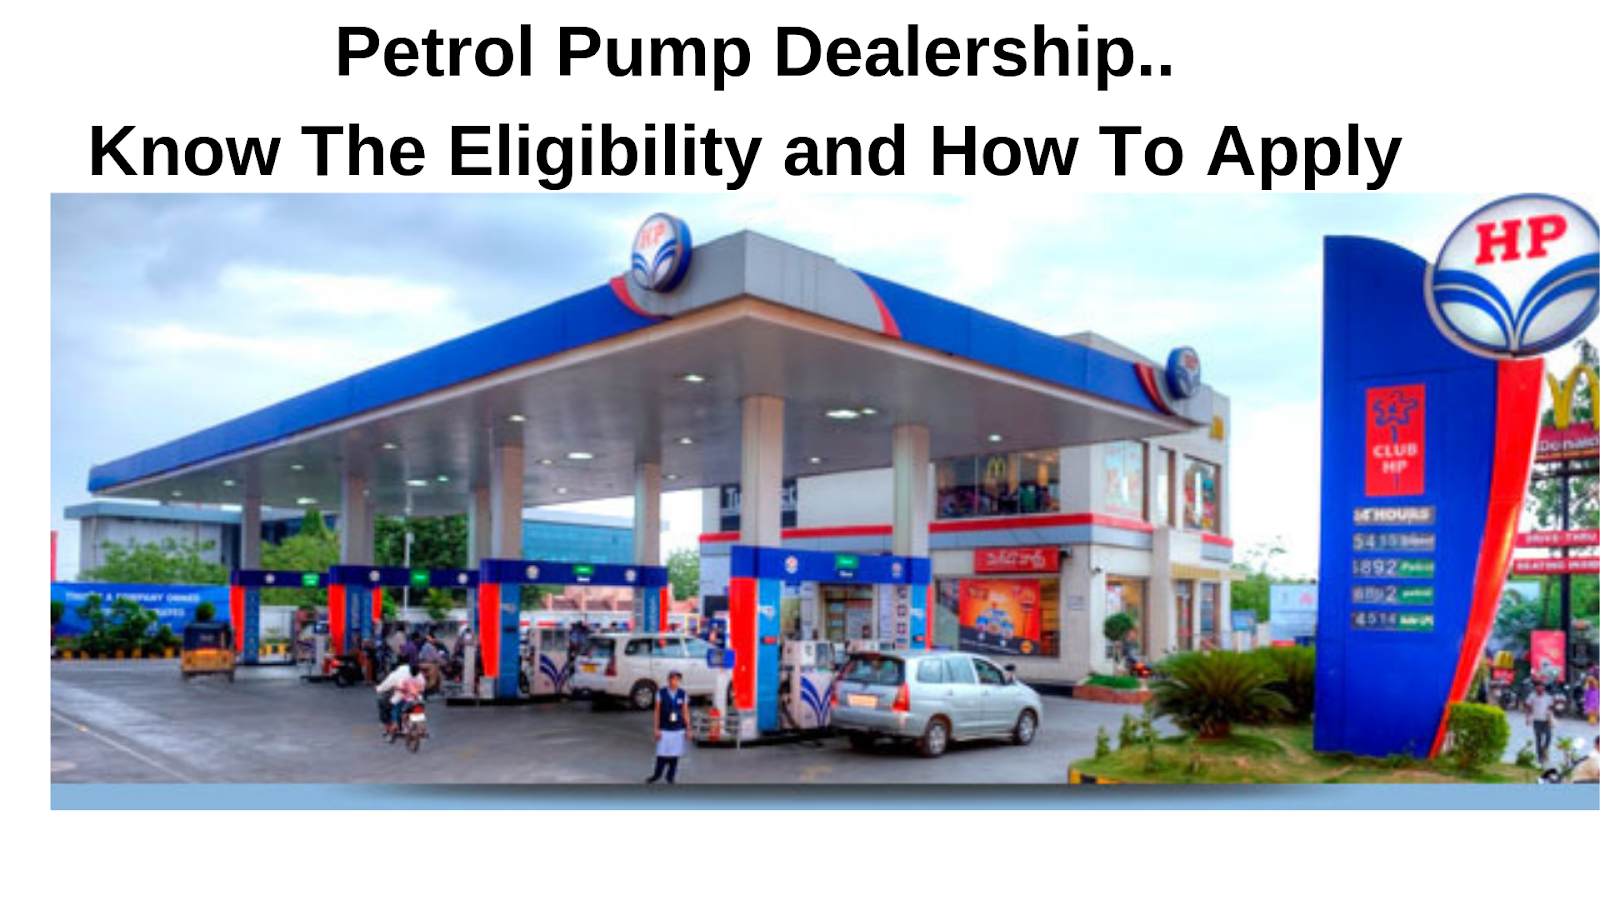 Petrol Pump Dealership Eligibility and Full Procedure (Explained)